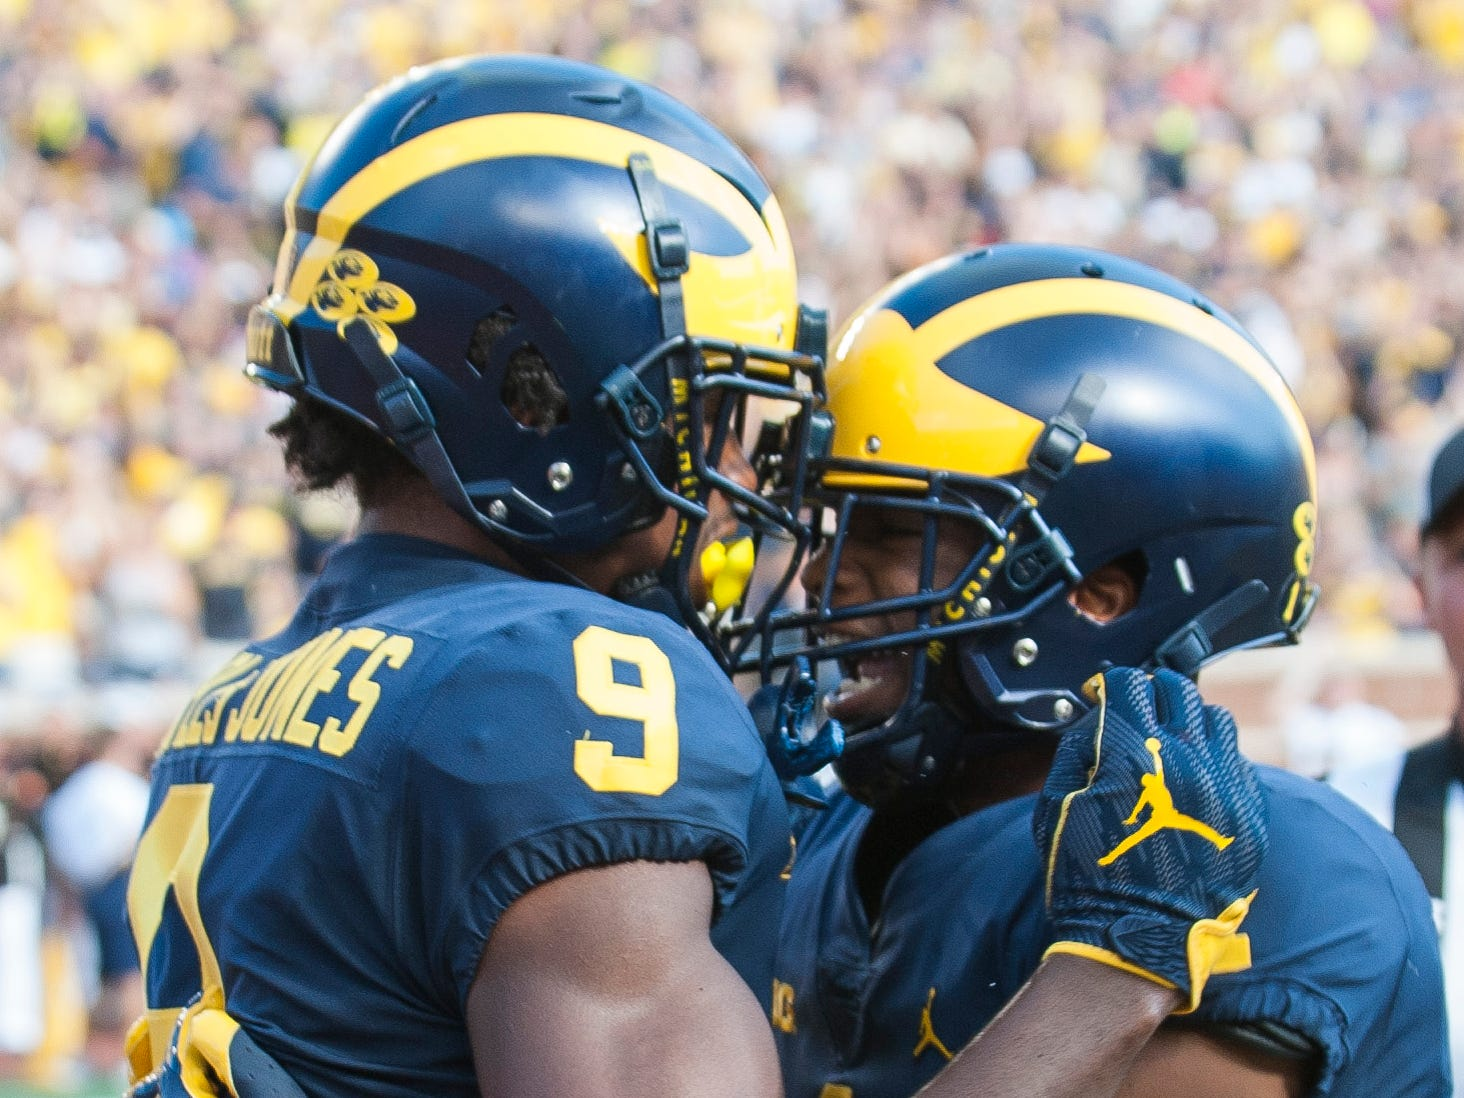 Michigan wide receiver Donovan Peoples-Jones (left) is congratulated by Ambry Thomas  after scoring on a 35-yard touchdown pass from quarterback Shea Patterson in the second quarter.